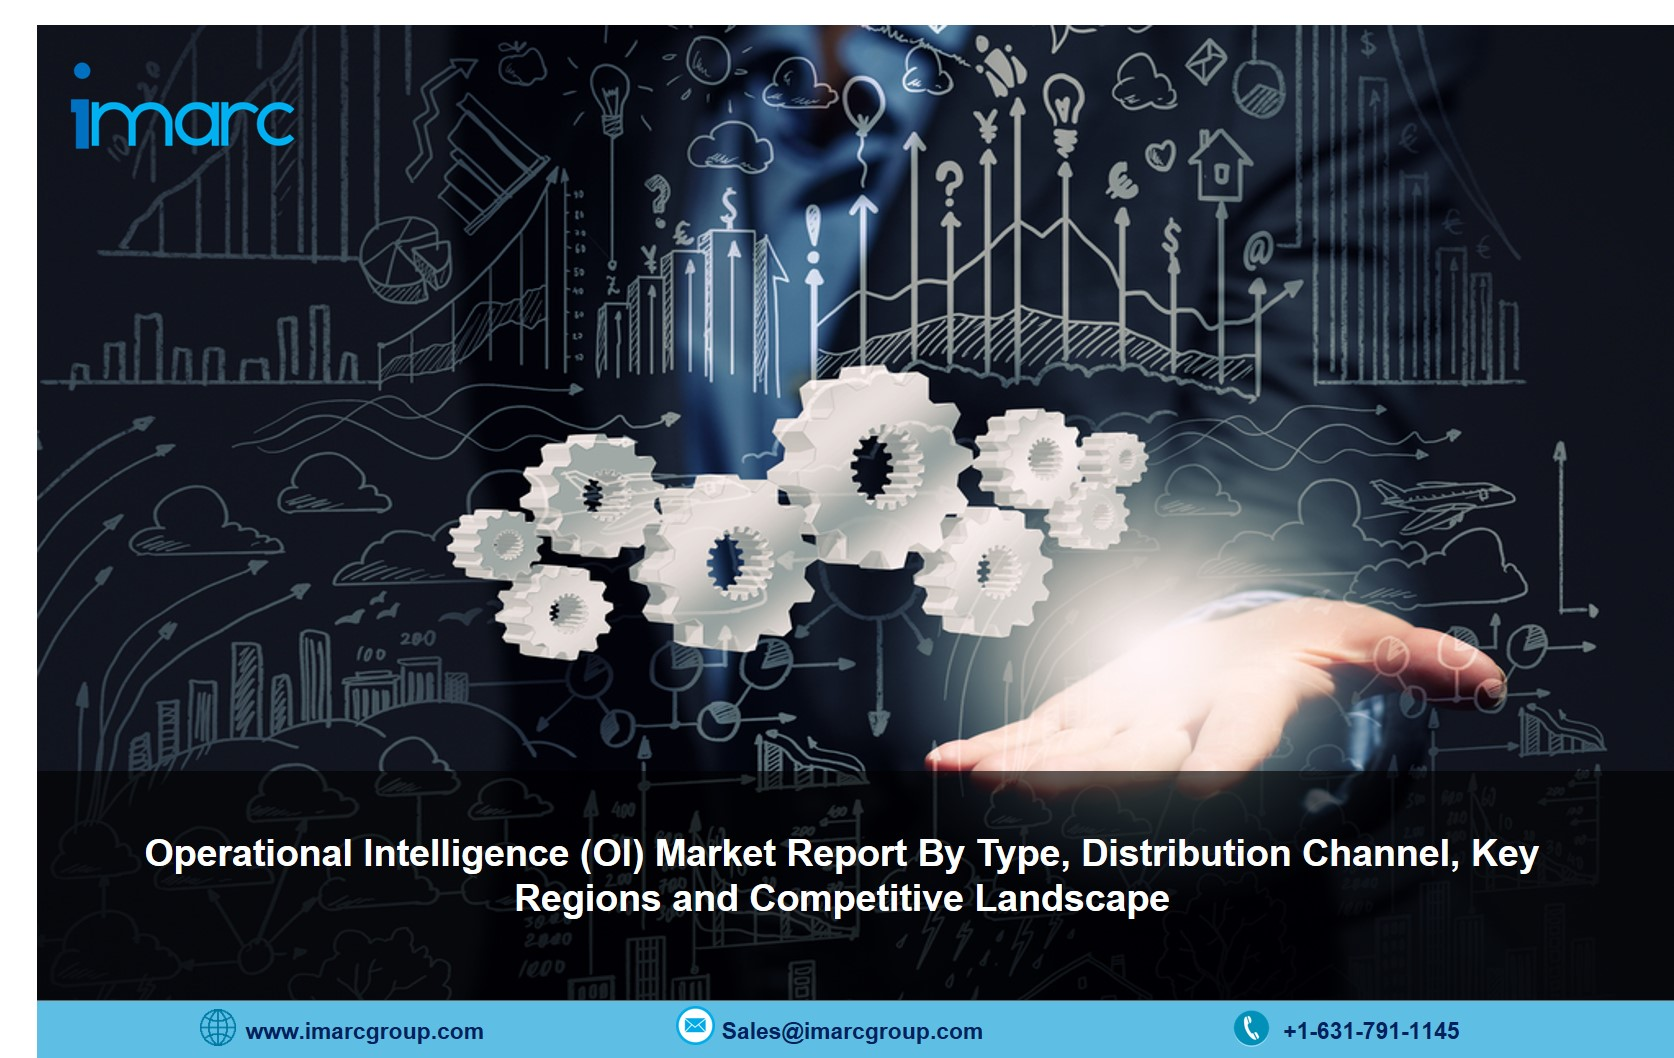 Operational Intelligence Market 2021-26: Size. Share, Price and Industry Trends